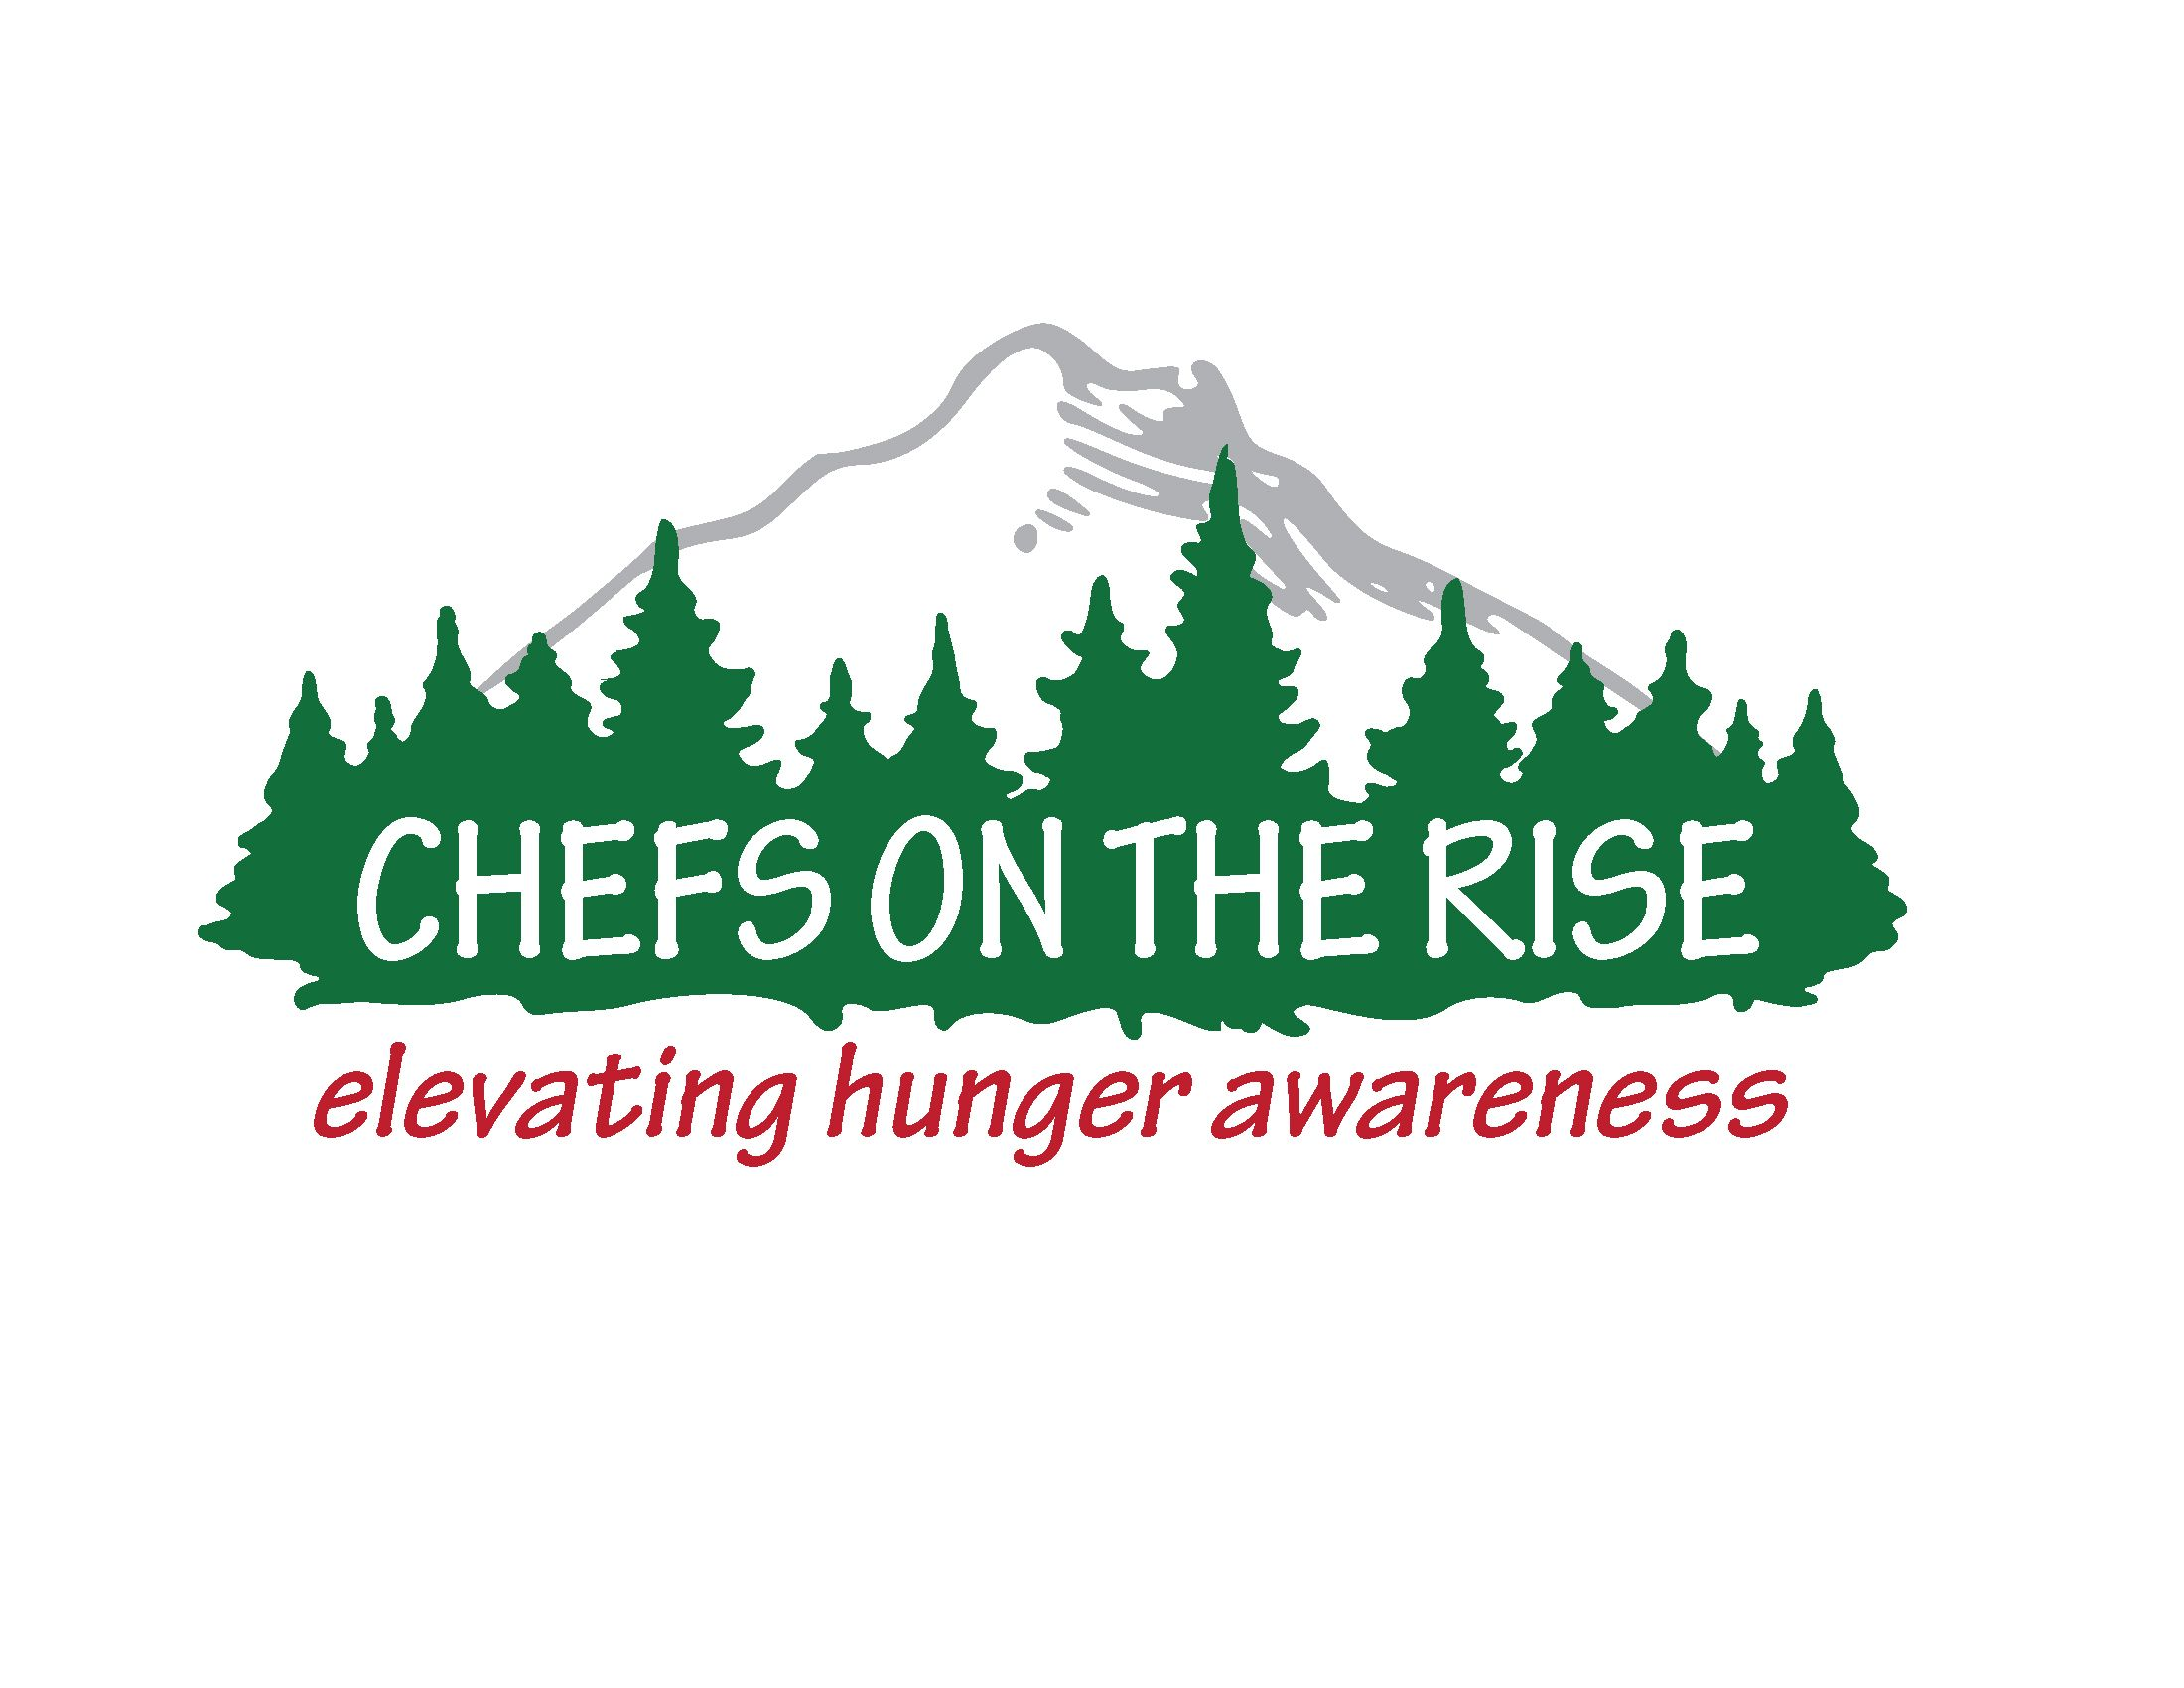 Chefs on the rise 611 the new hampshire food bank